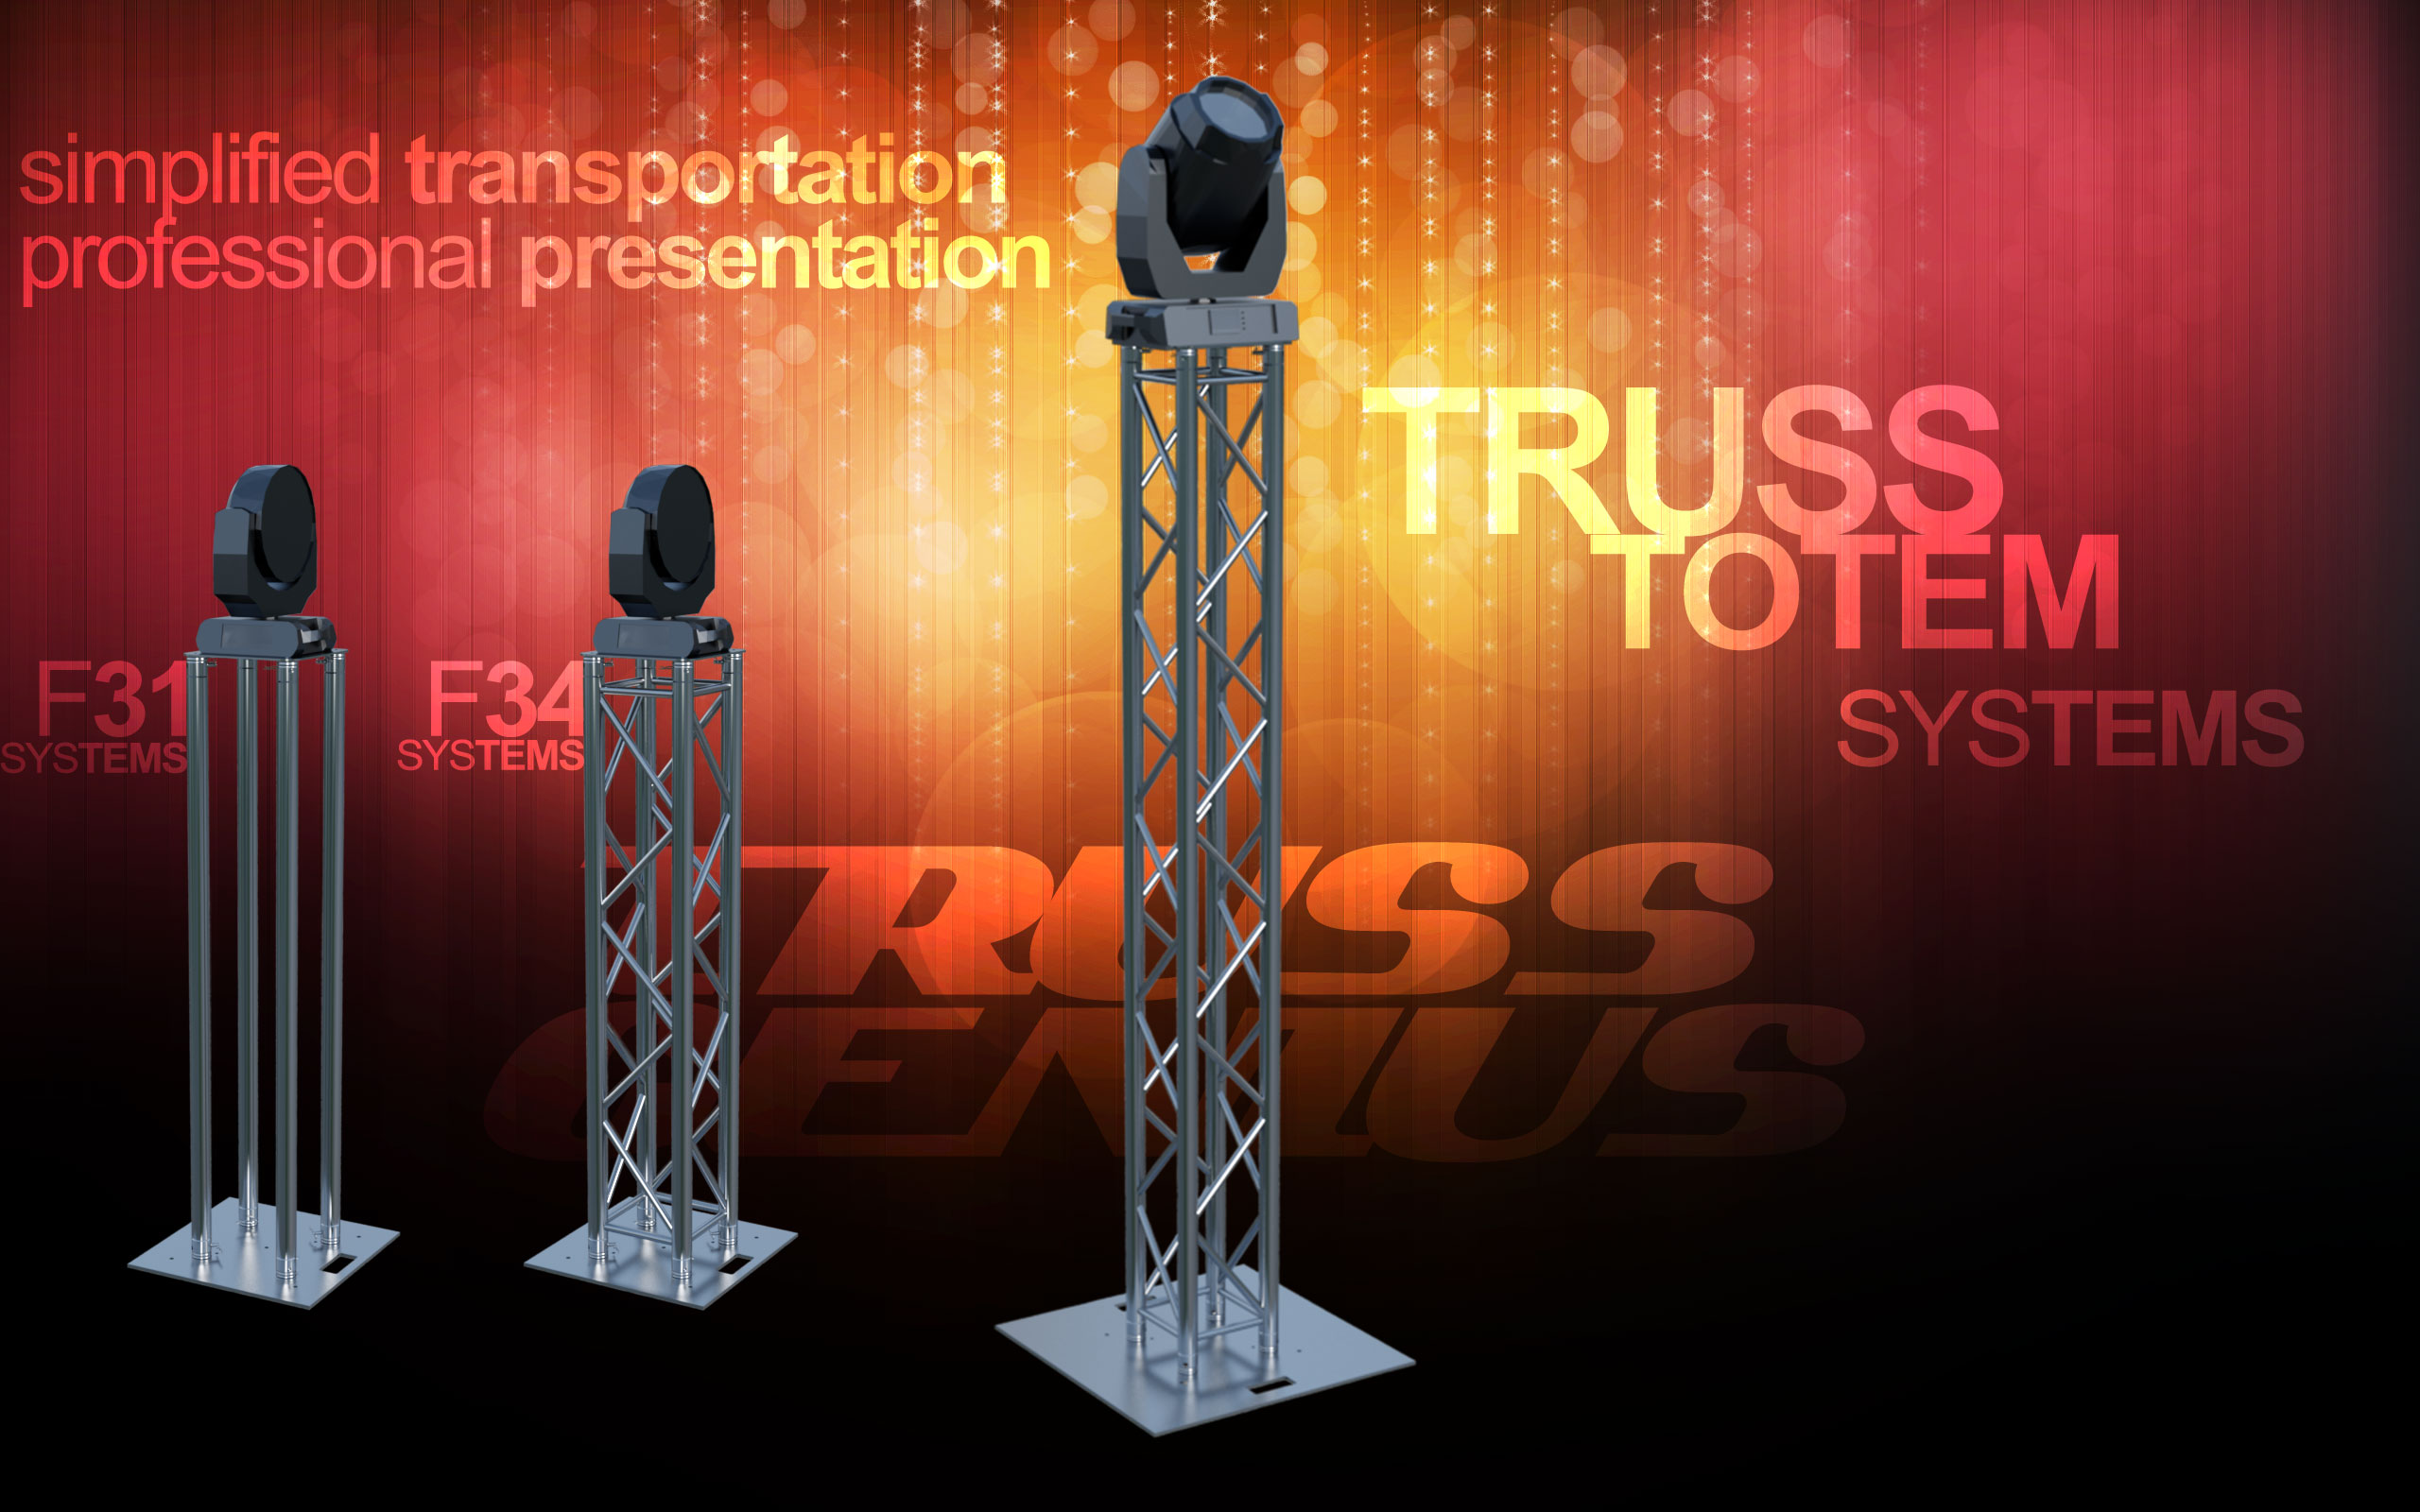 aluminum truss, square truss, box truss, f34 truss, f24 truss, tube totem, glow totem, f31 single tube, stage trussing, lighting truss, milos, trusst, global truss, truss genius